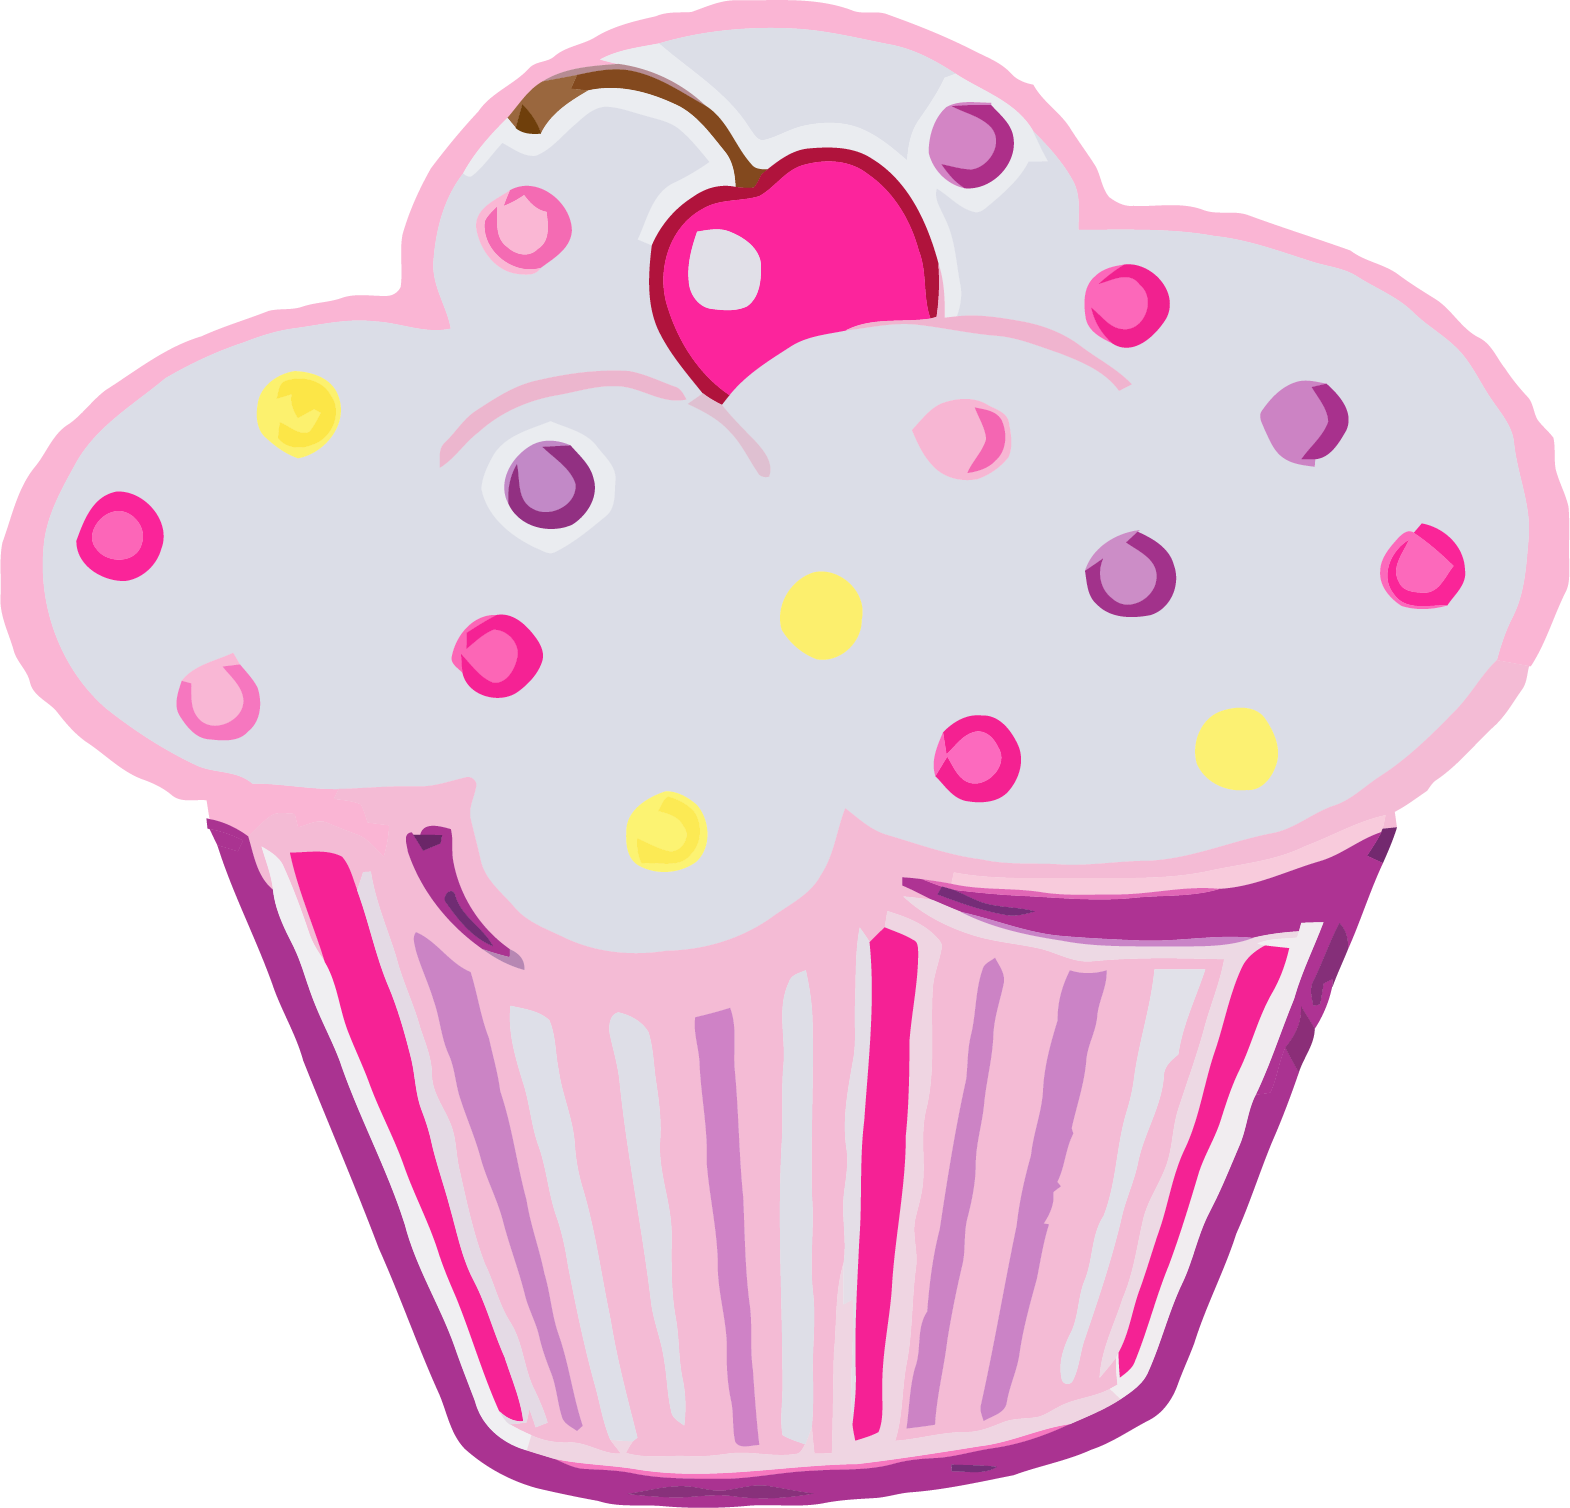 Cupcake with heart clipart clip art library stock Cupcake Clipart Png | jokingart.com Cupcake Clipart clip art library stock